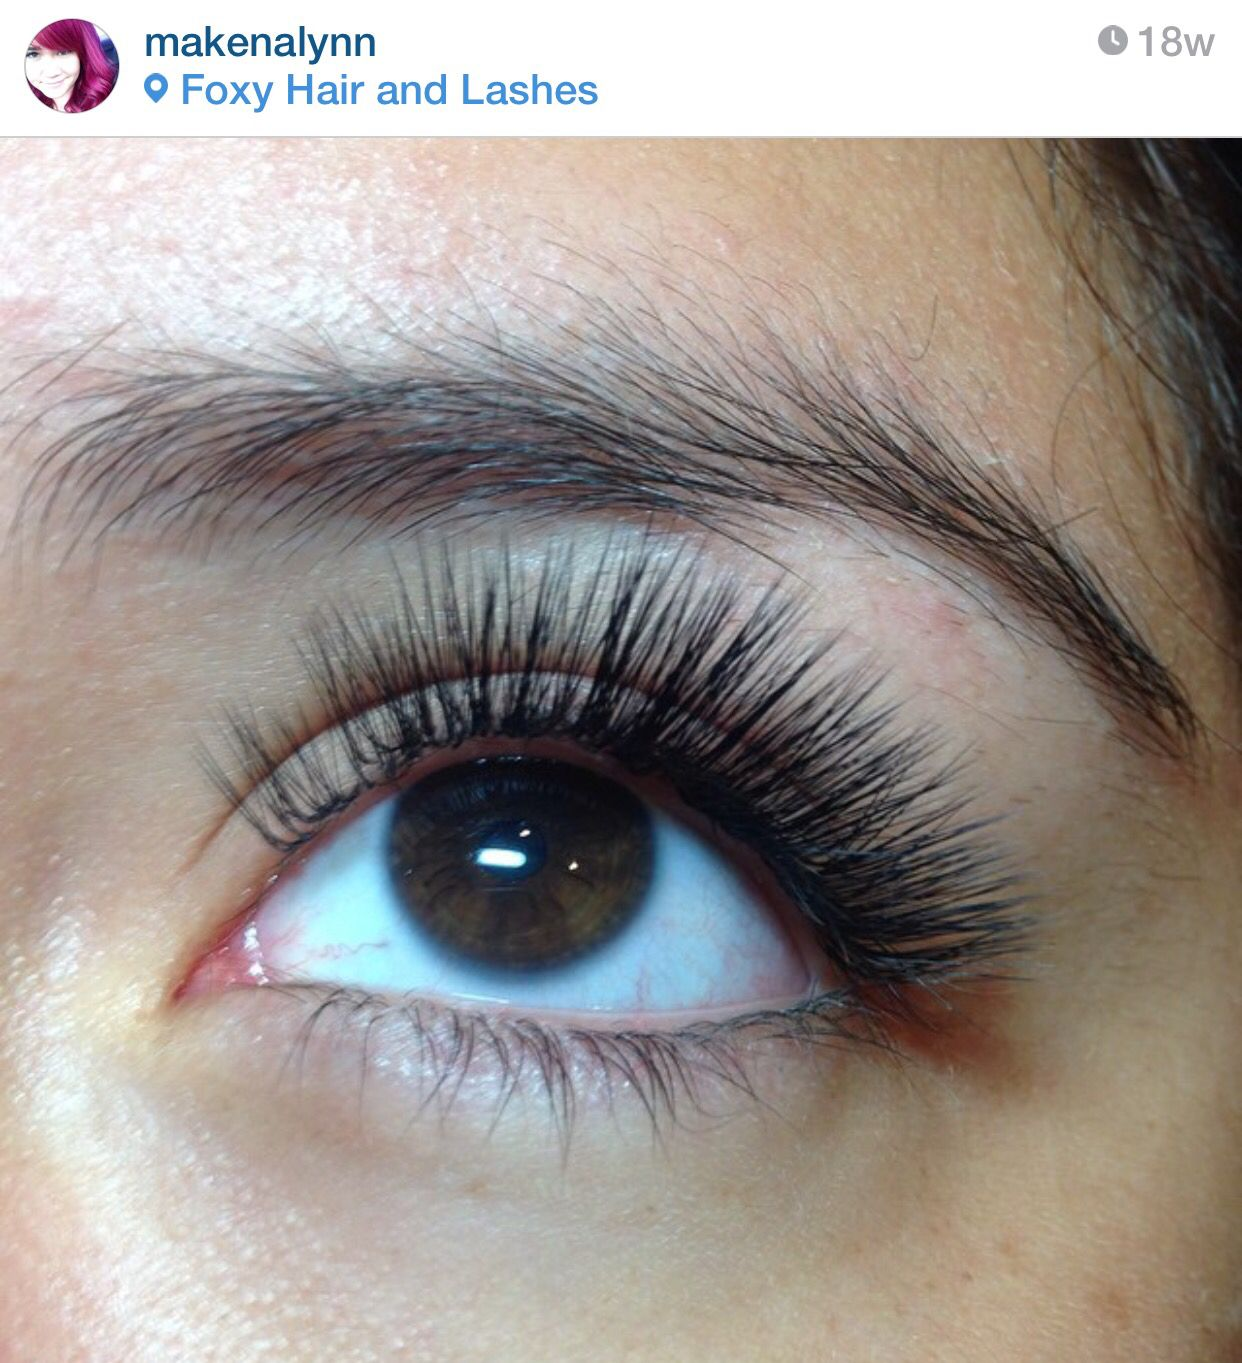 e1bda024ffe Lash extensions done by @Makenalynn (via Instagram), using Sugar Lash Pro  products. L-curl lashes from in .07 9-13mm.